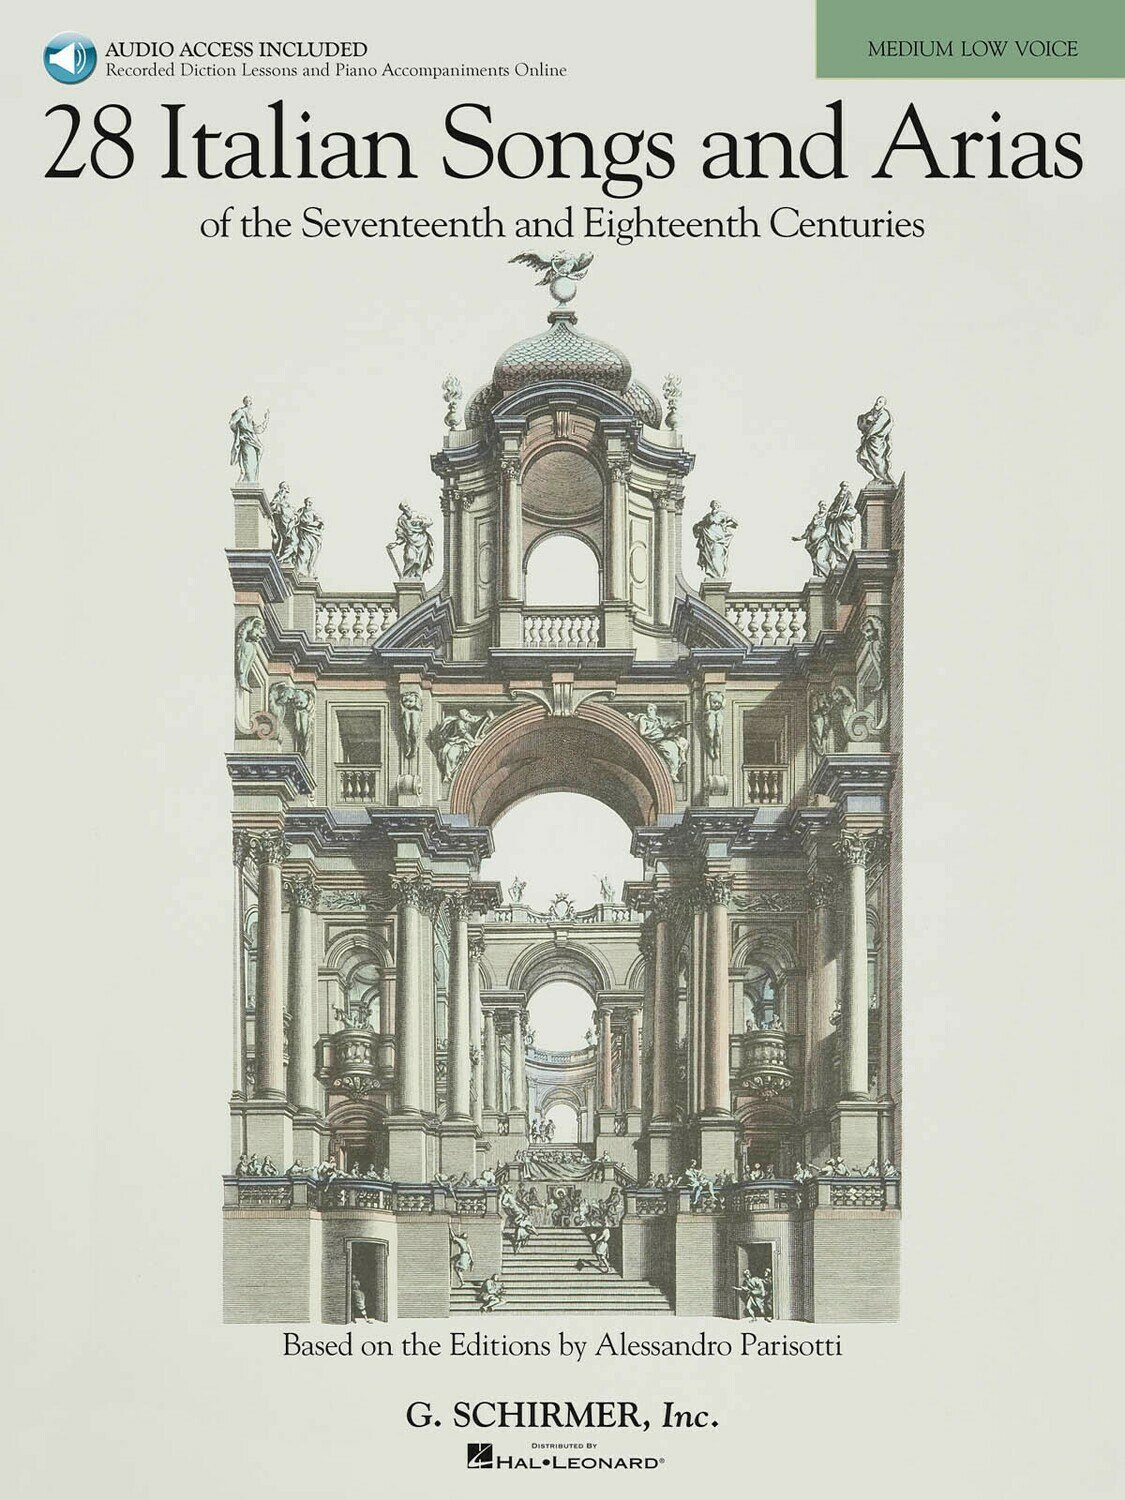 28 ITALIAN SONGS & ARIAS OF THE 17TH & 18TH CENTURIES –MEDIUM LOW, BOOK/ONLINE AUDIO Based on the original editions by Alessandro Parisotti